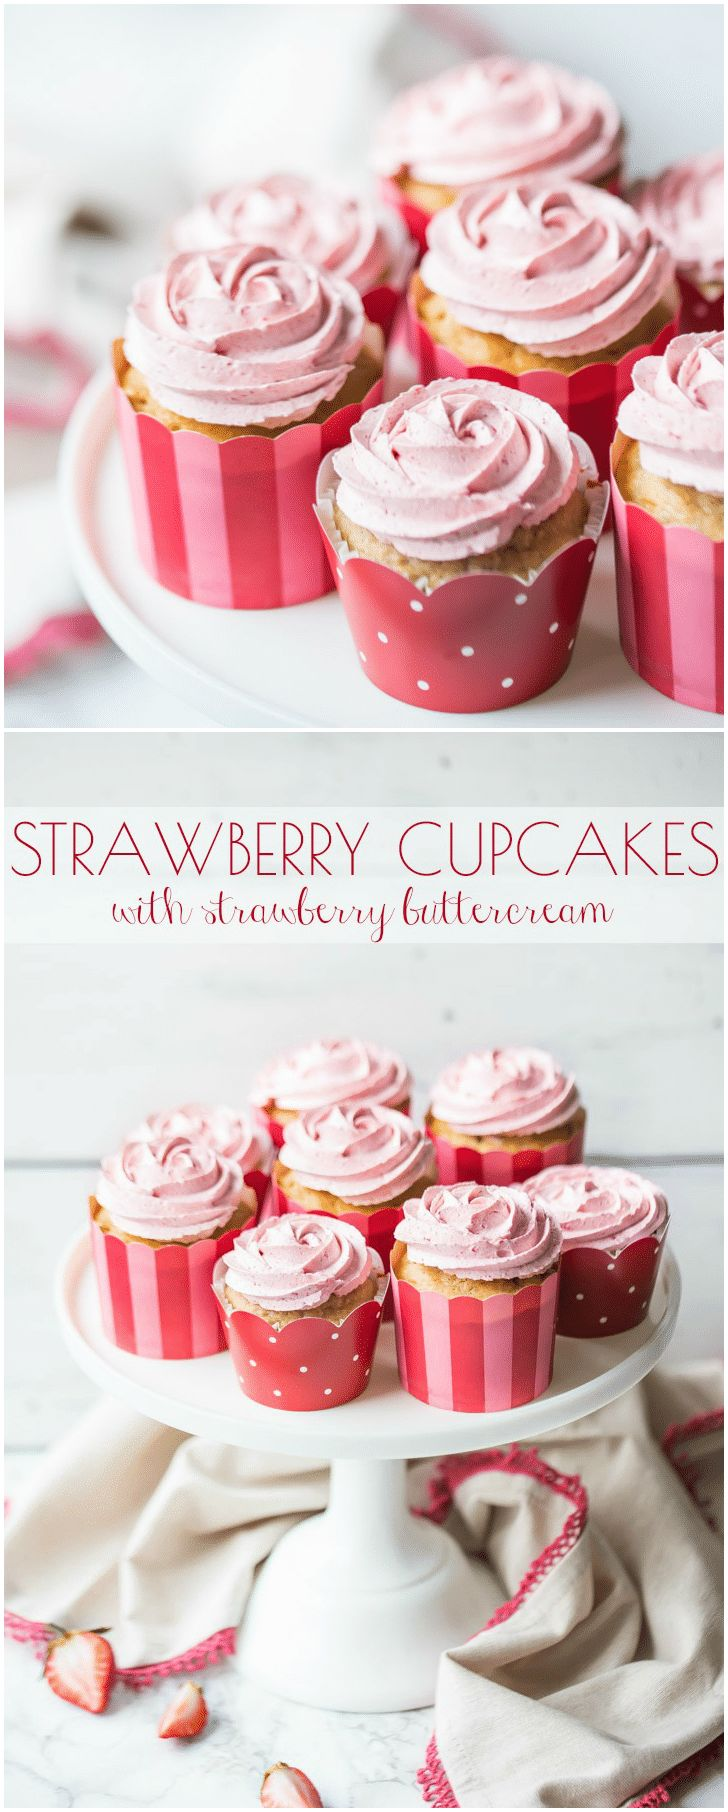 Strawberry Cupcakes with Strawberry Buttercream: these had SO MUCH incredible strawberry flavor, and they're all natural, nothing artificial, no jell-o required! #strawberry #cupcakes #buttercream #frosting #desserts #mothersday #valentinesday #birthday via @bakingamoment